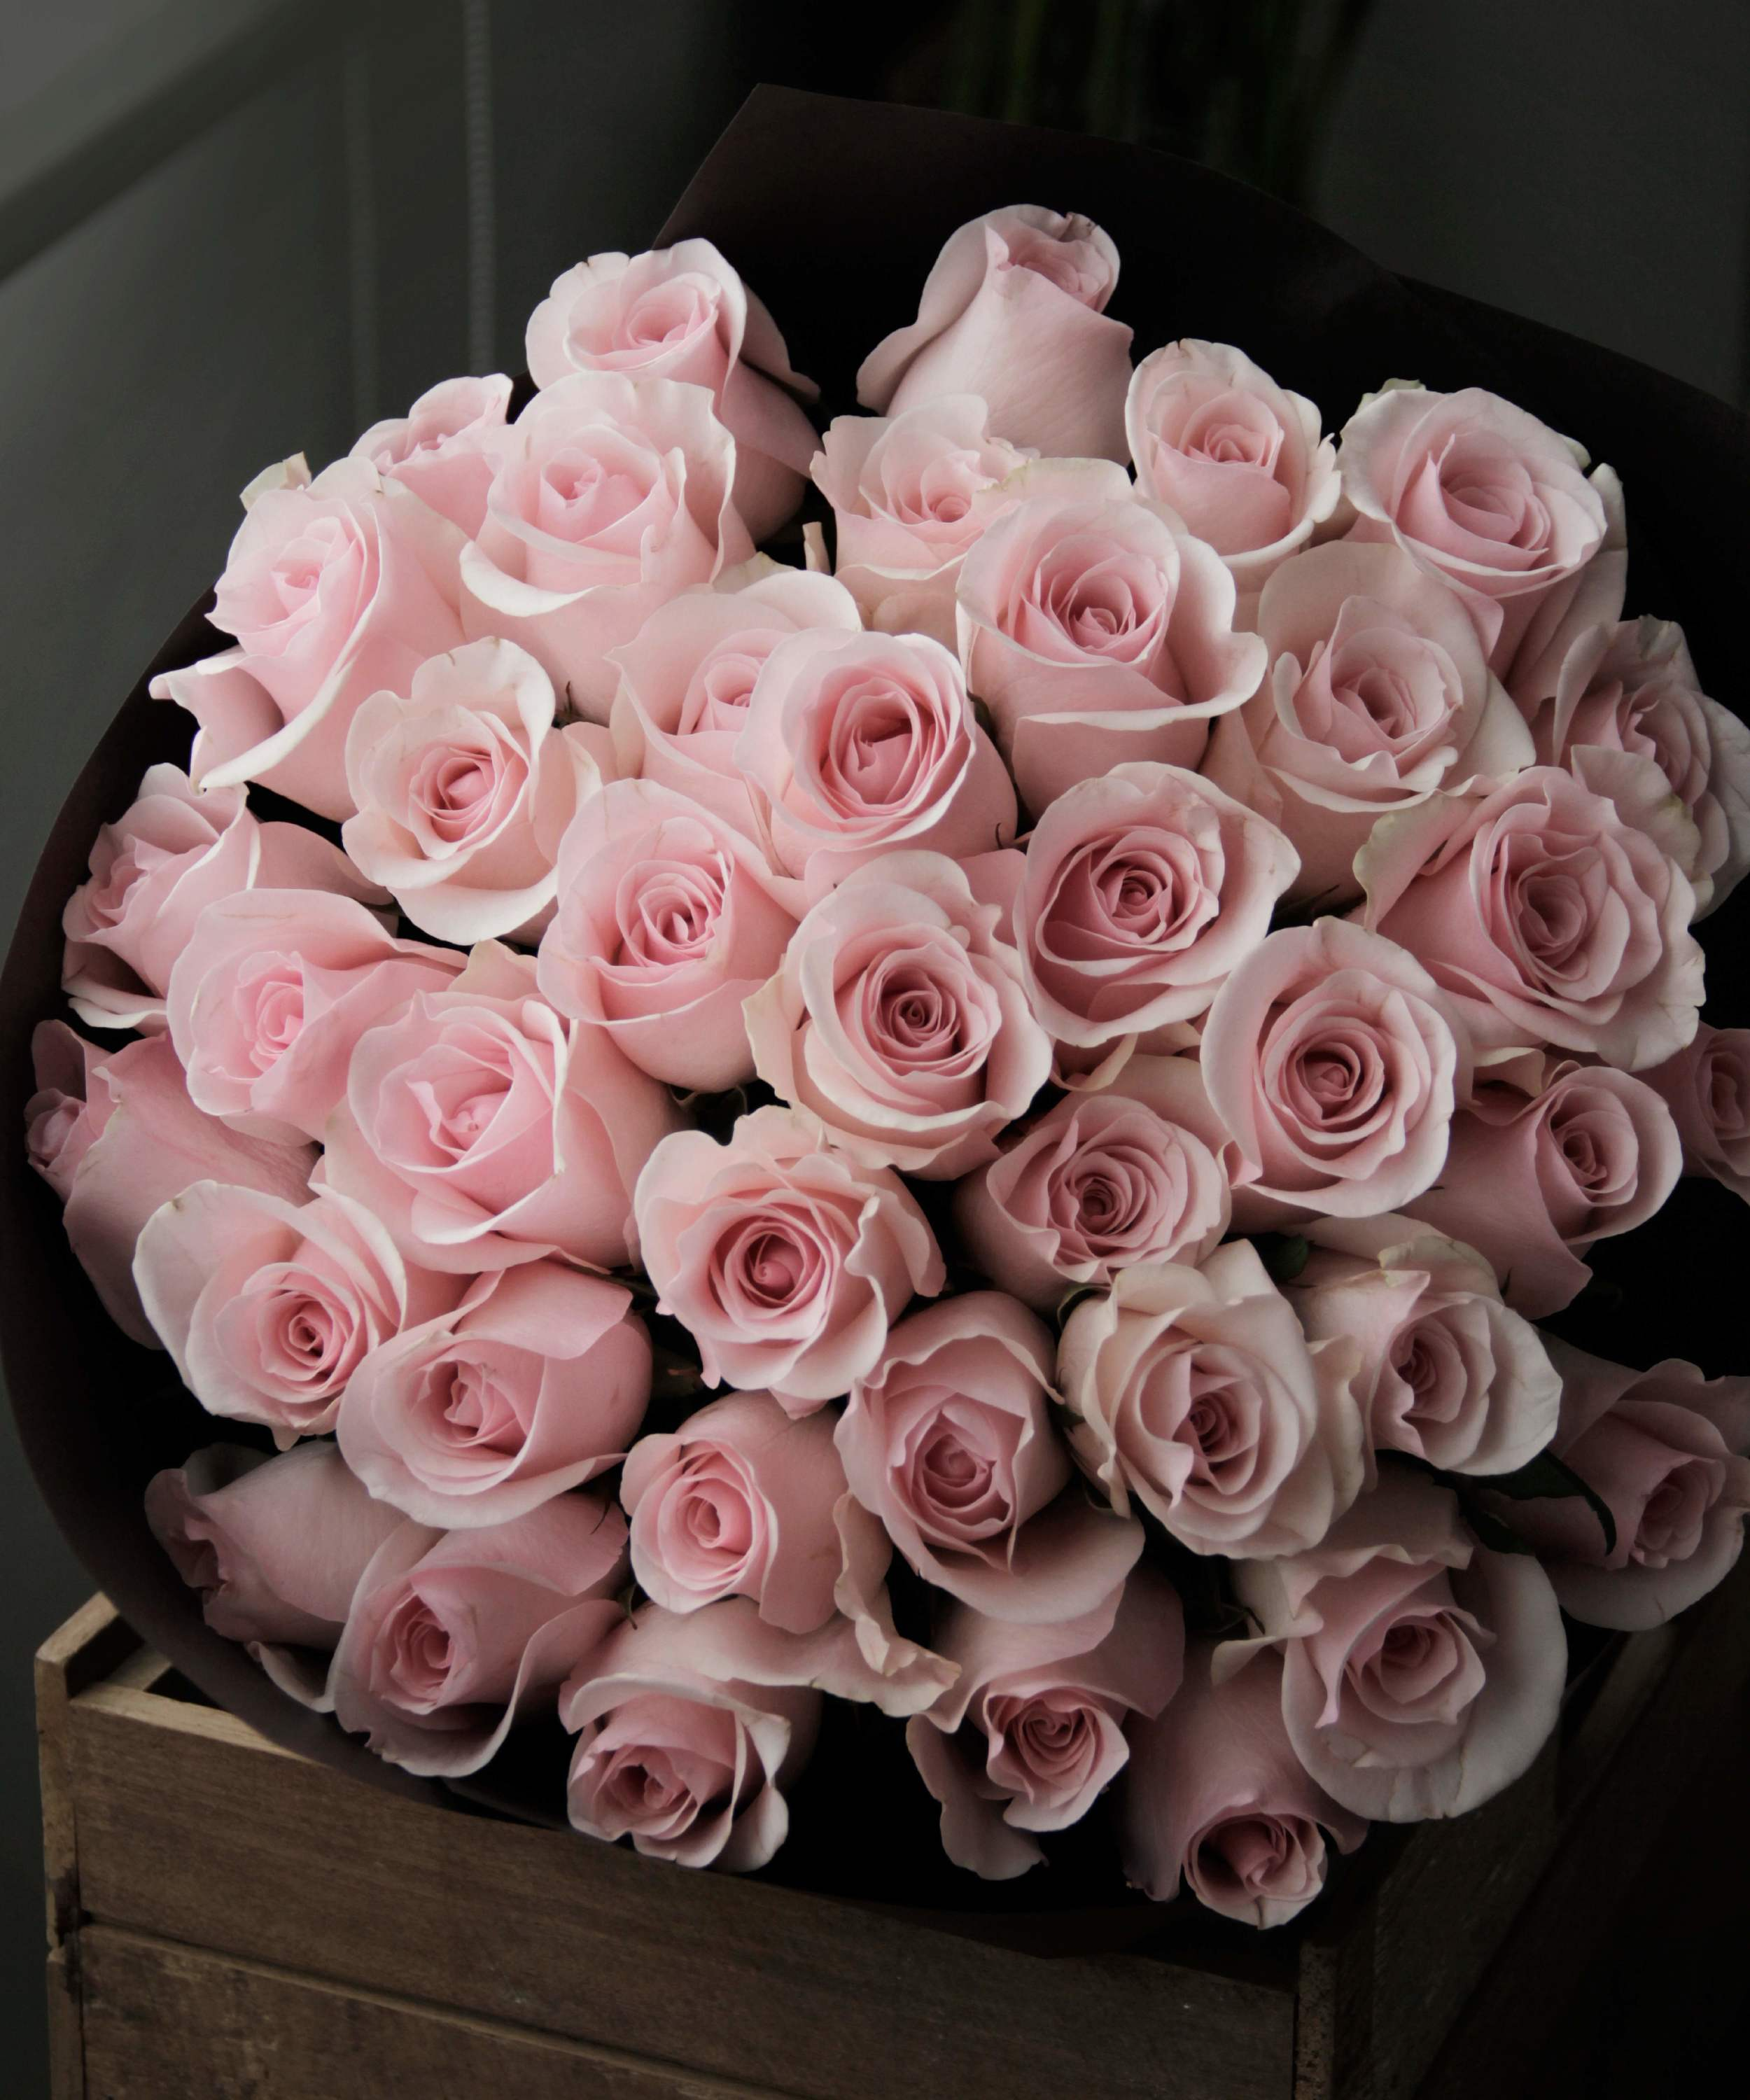 flowers from the heart_4.jpg